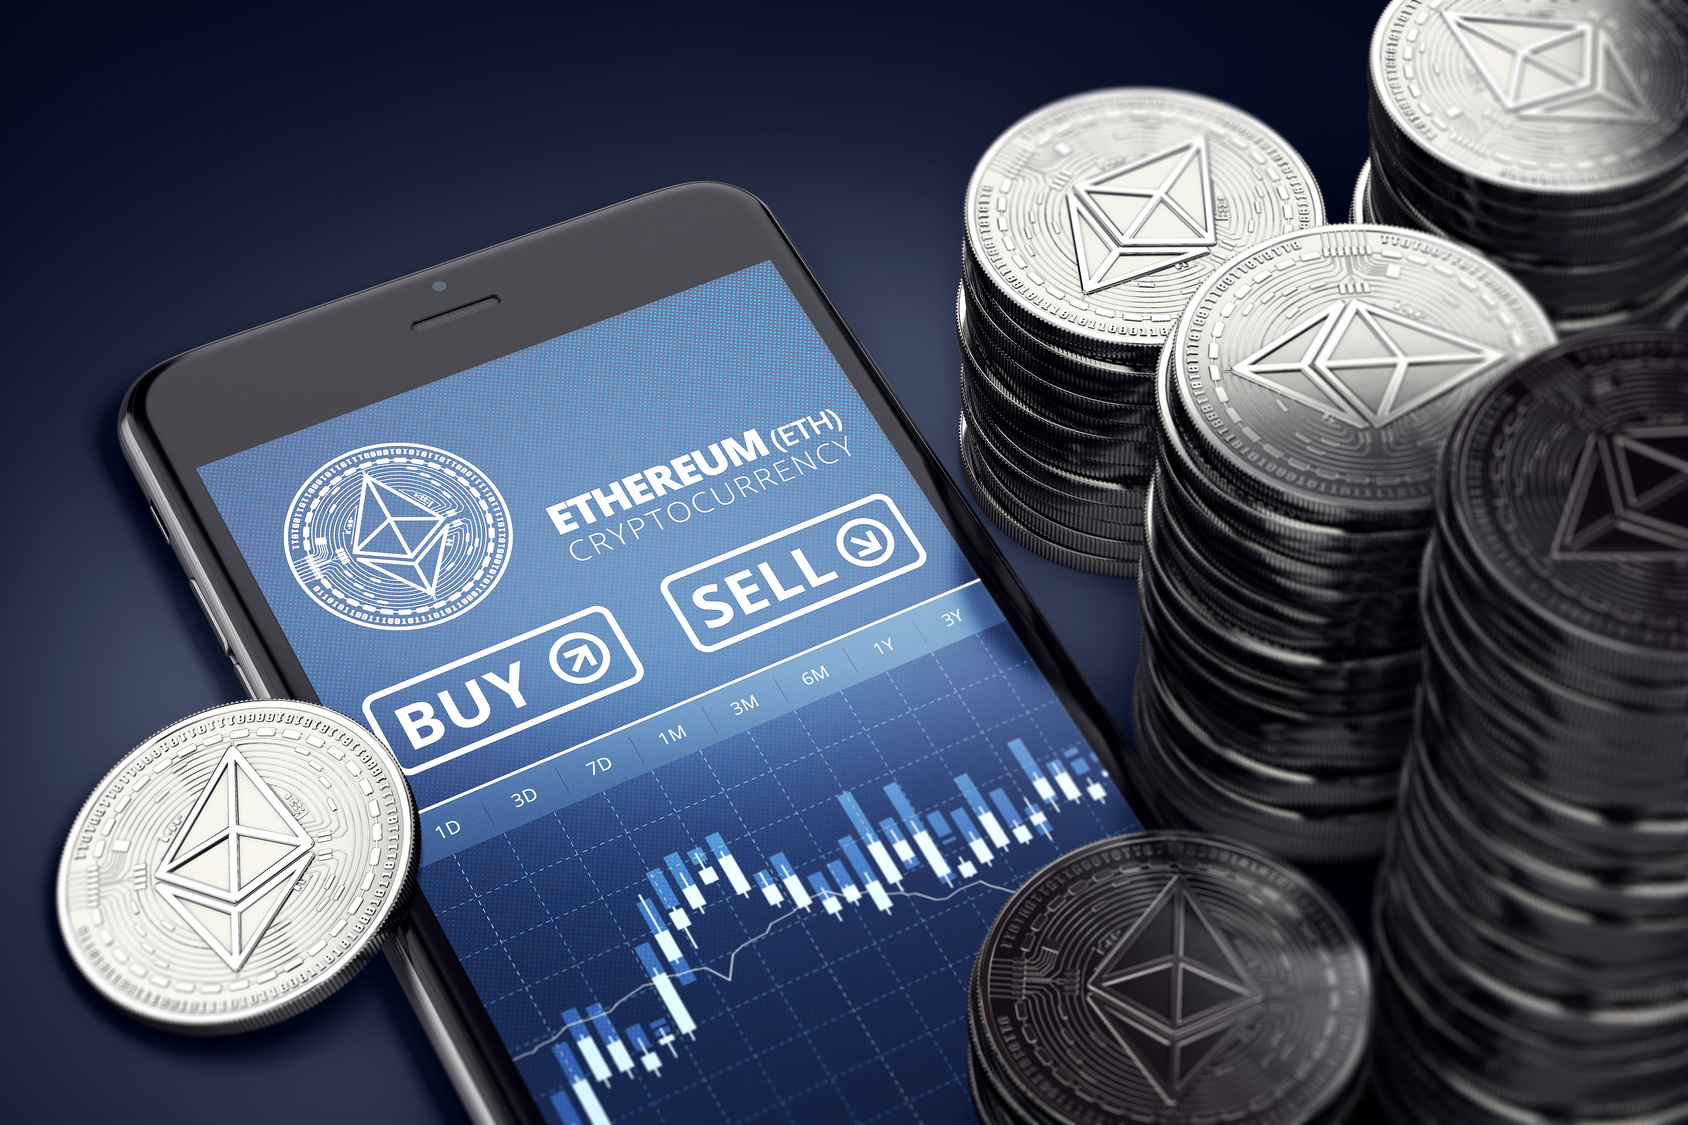 Research: Ether Was the Cryptocurrency Most Correlated to Other Coins in 2019